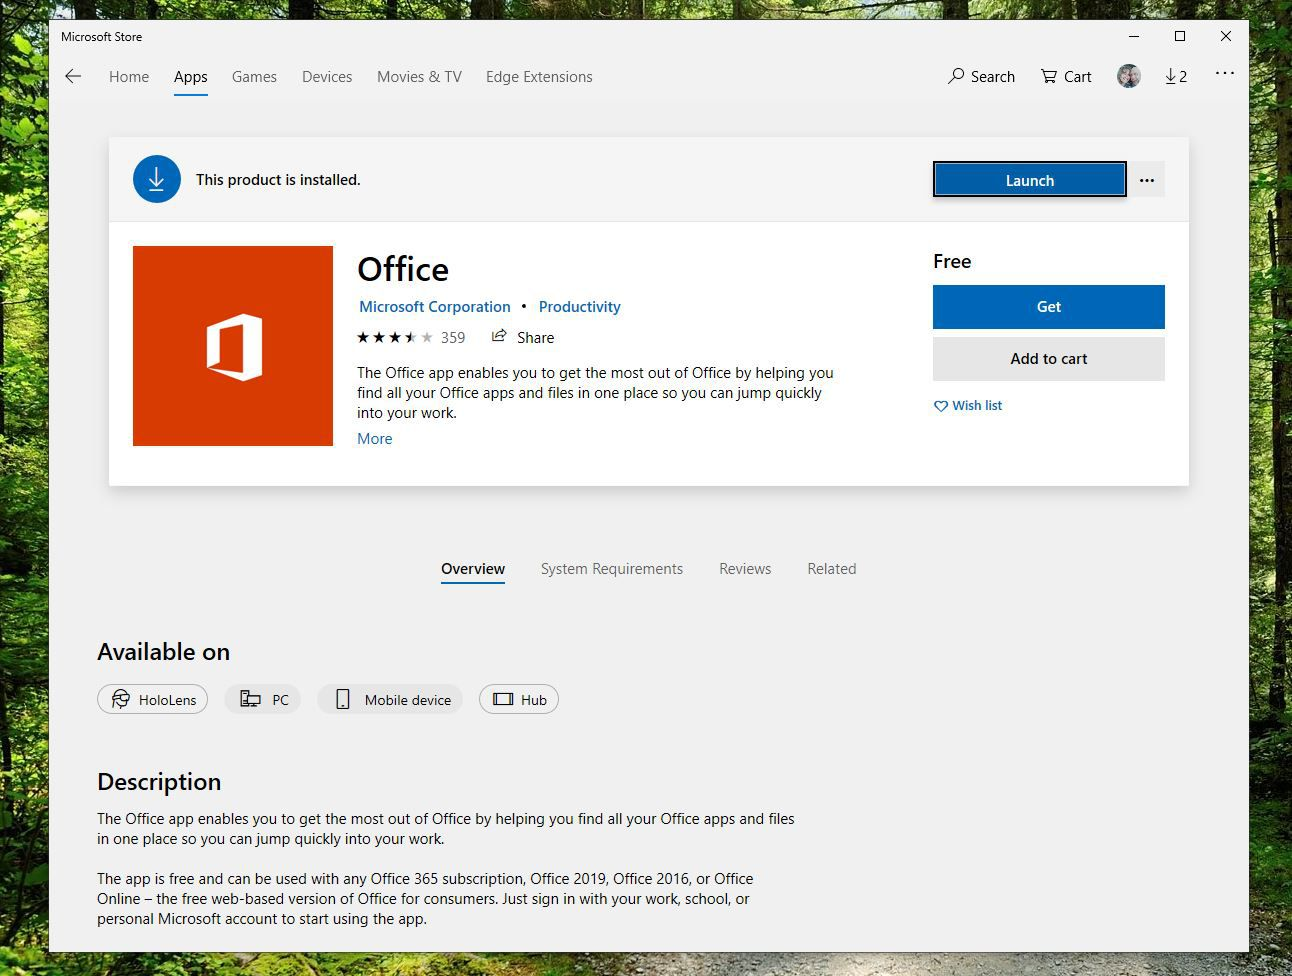 Screenshot of Get button on Office app in Microsoft Store